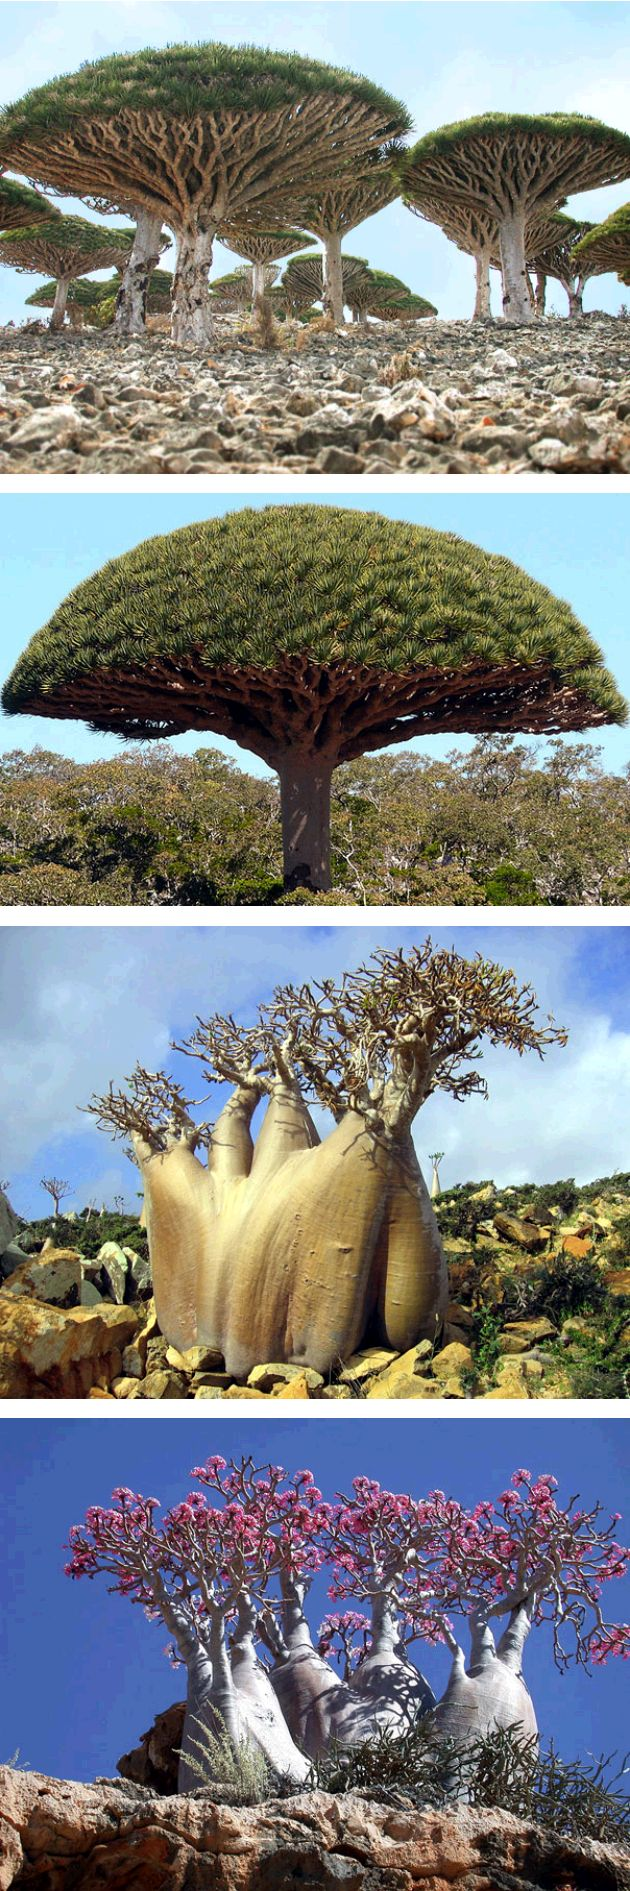 @ Socotra Island, Yemen http://en.wikipedia.org/wiki/Socotra http://reversehomesickness.com/asia/socotra-the-most-alien-place-on-earth/